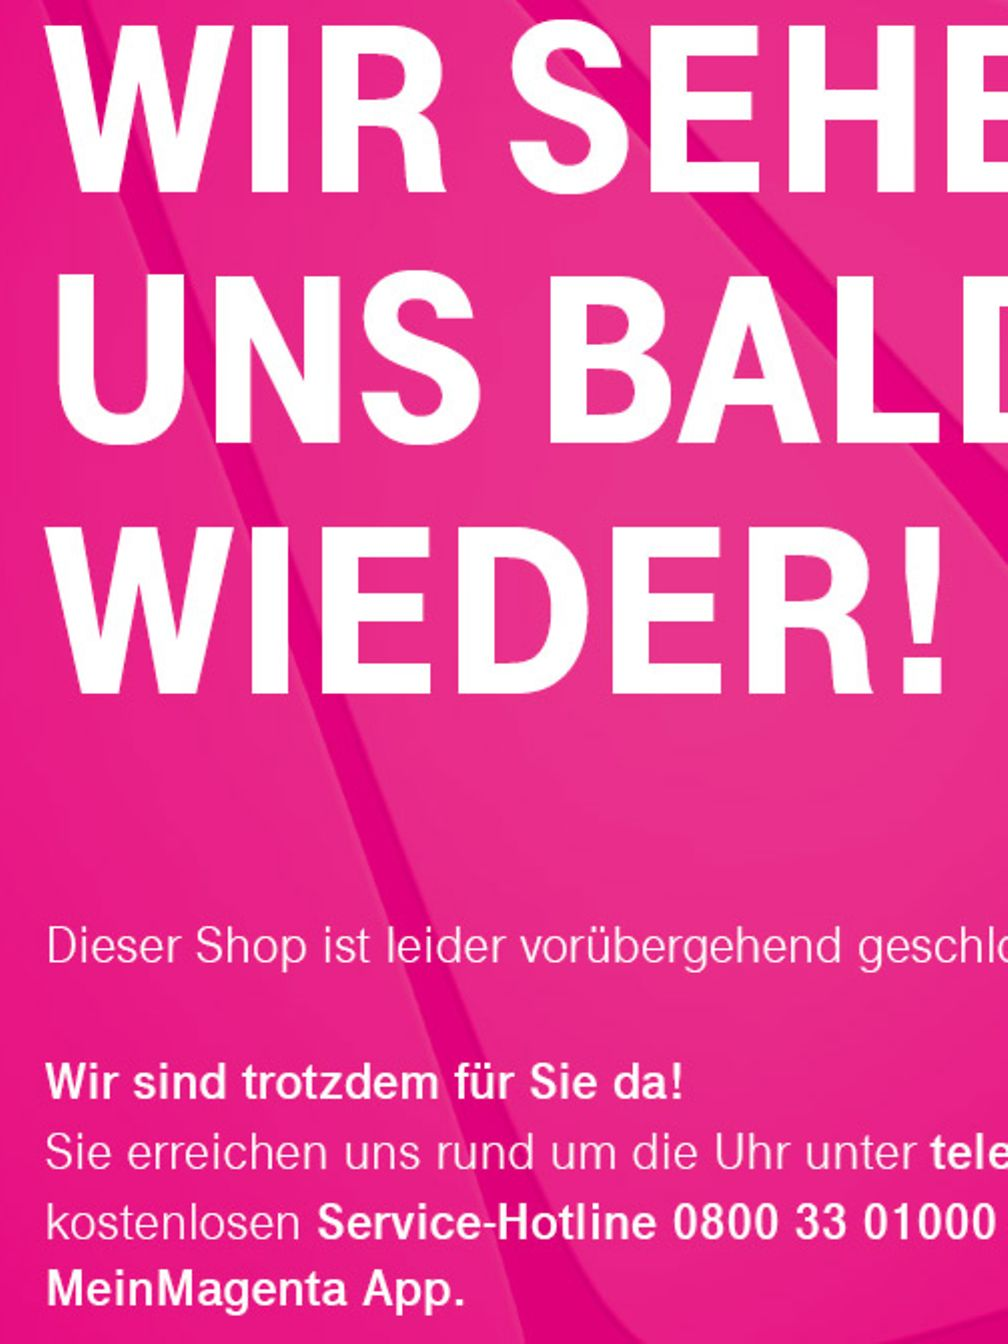 Information sign for customers at the Telekom Shops.